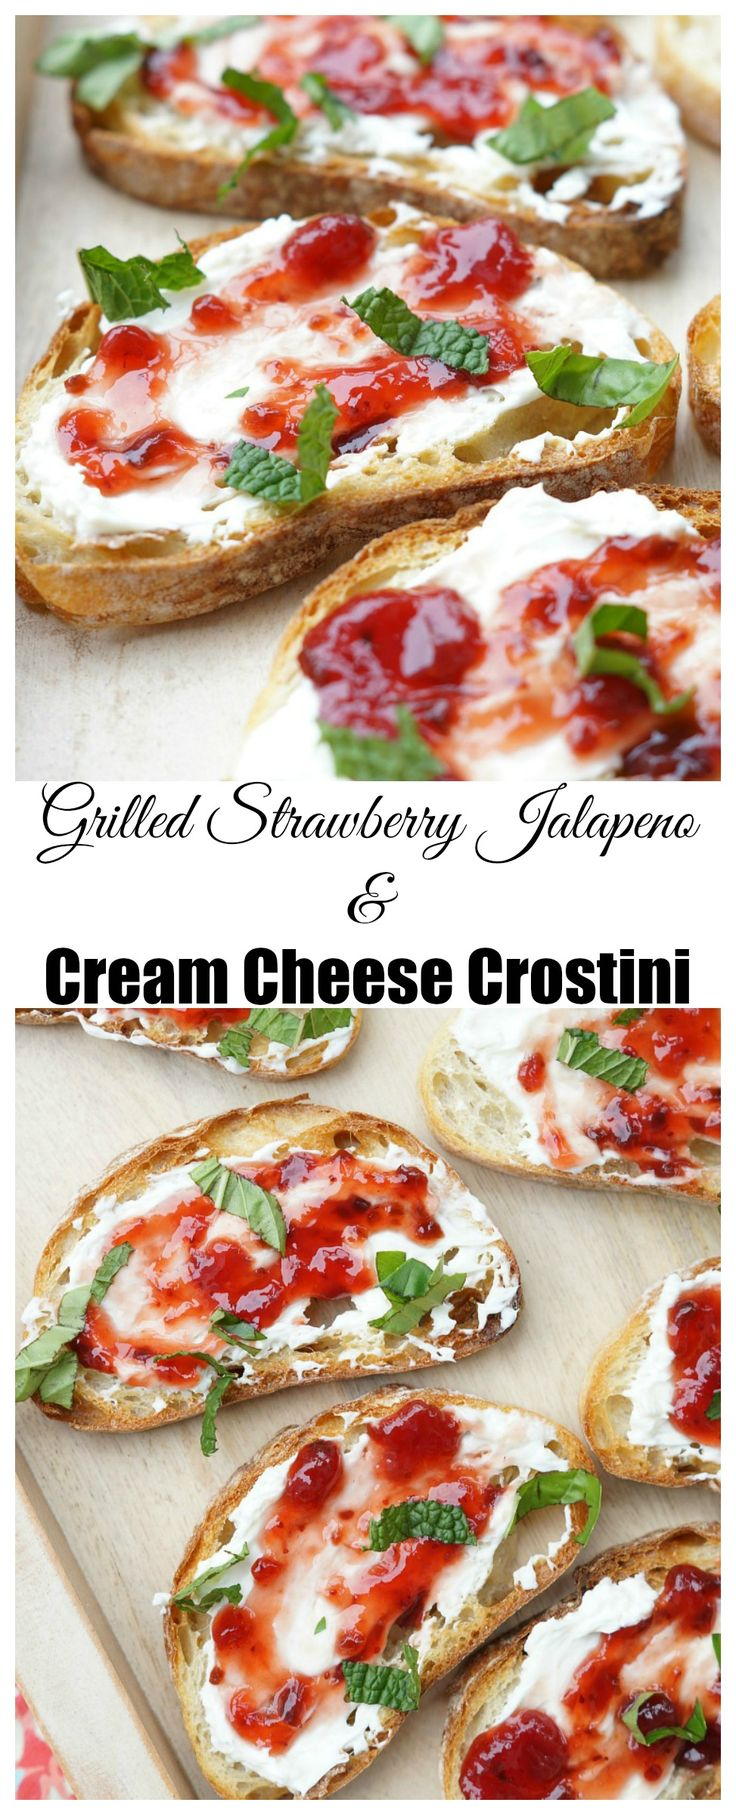 Grilled Strawberry Jalapeno and Cream Cheese Crostini